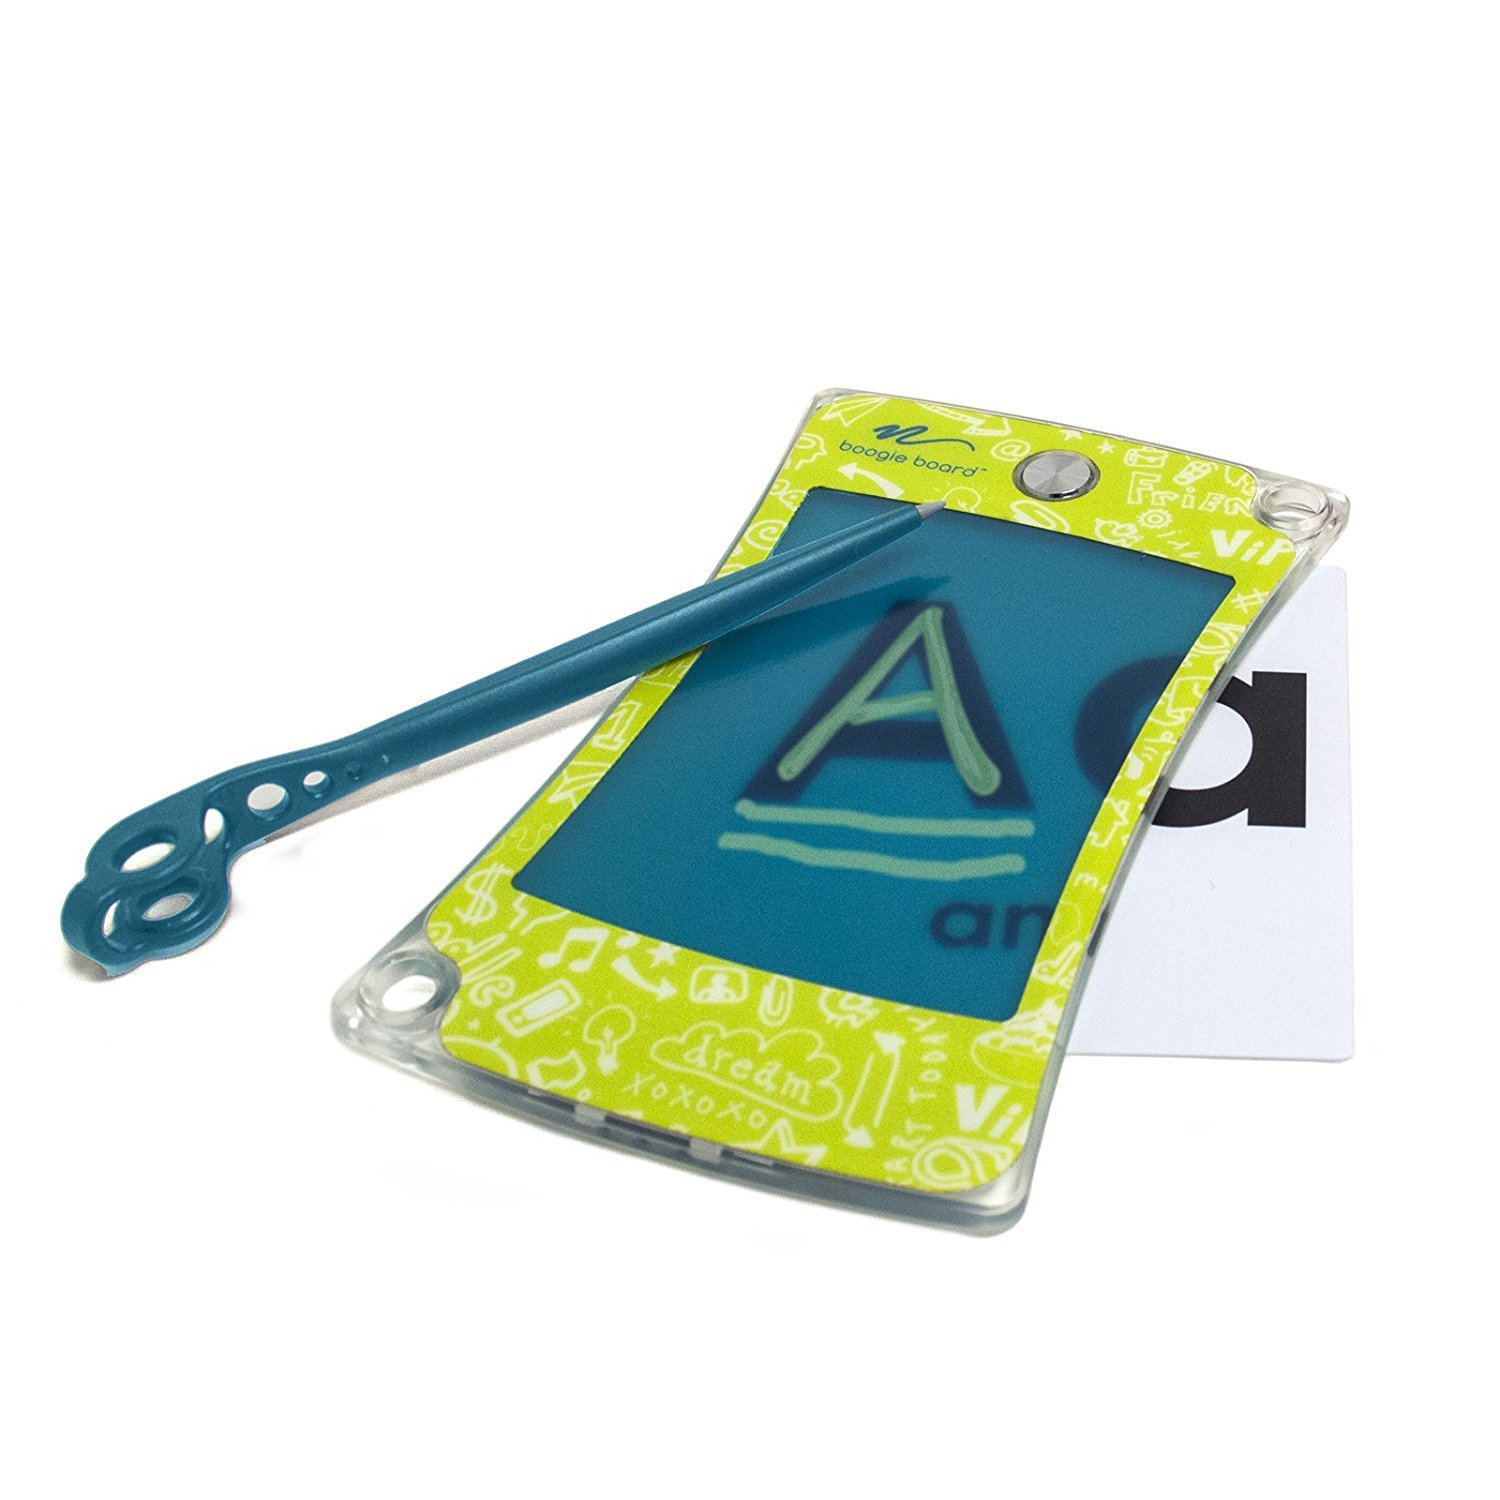 Boogie Board Jot 4.5 LCD eWriter Clear View image